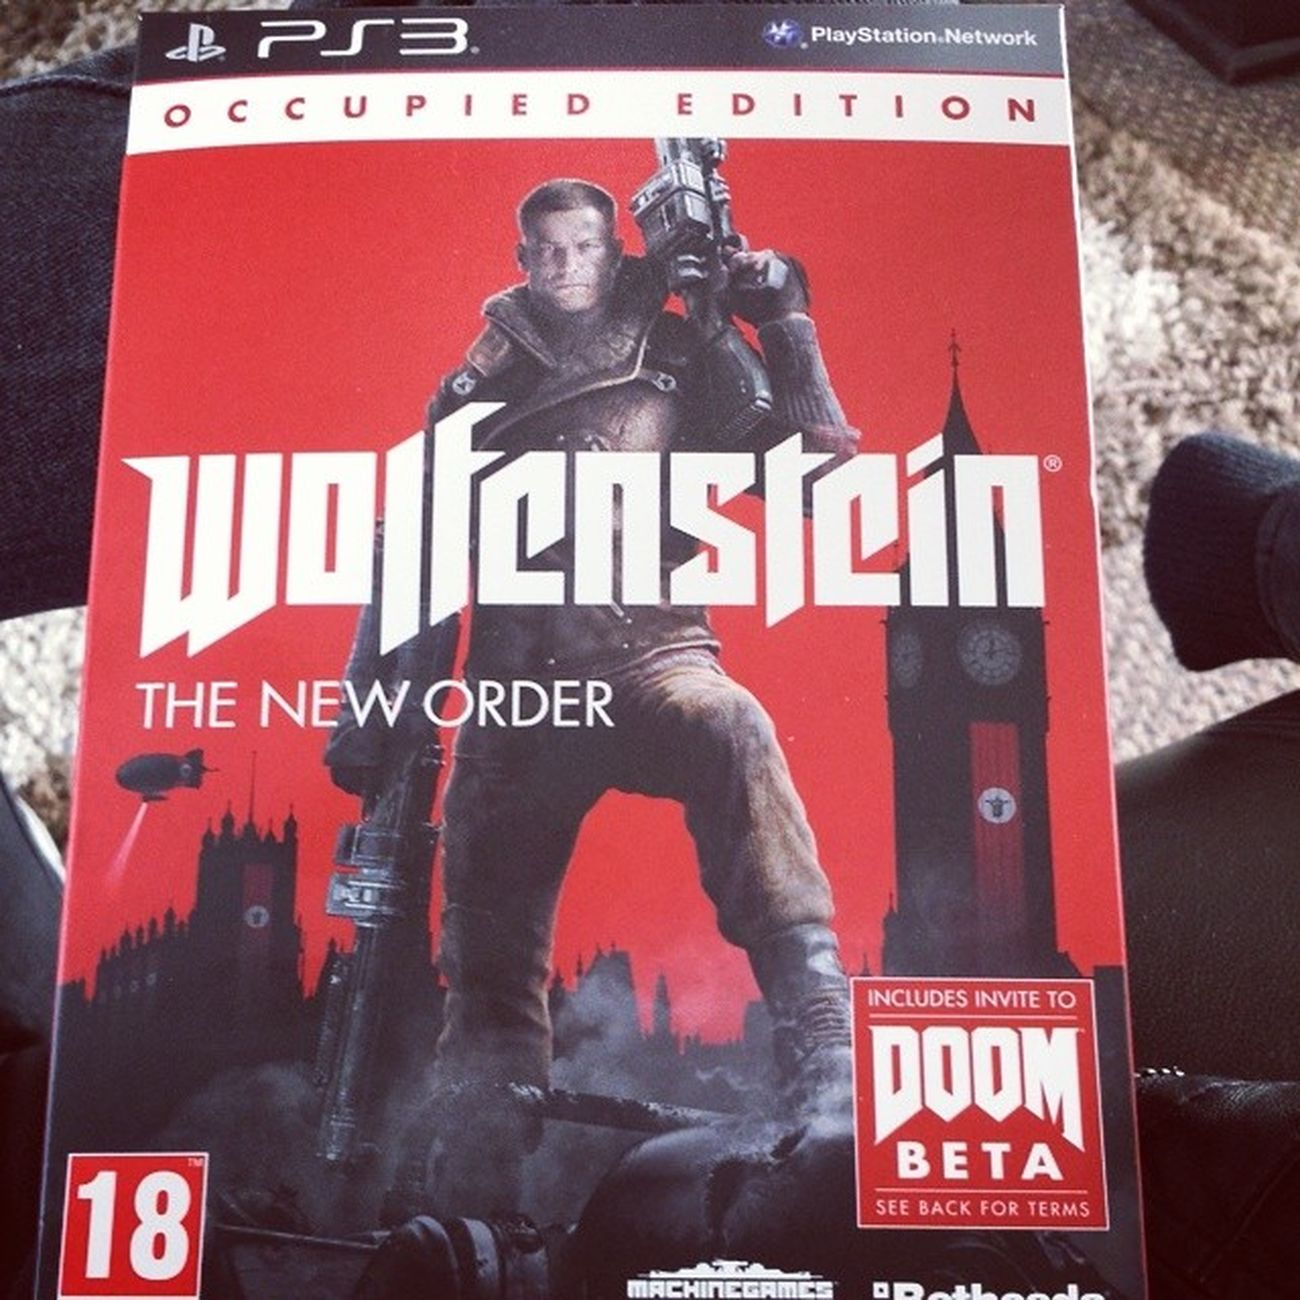 Just got Wolfenstein :D Excited Game Ps3 Wolfensteintheneworder doombeta